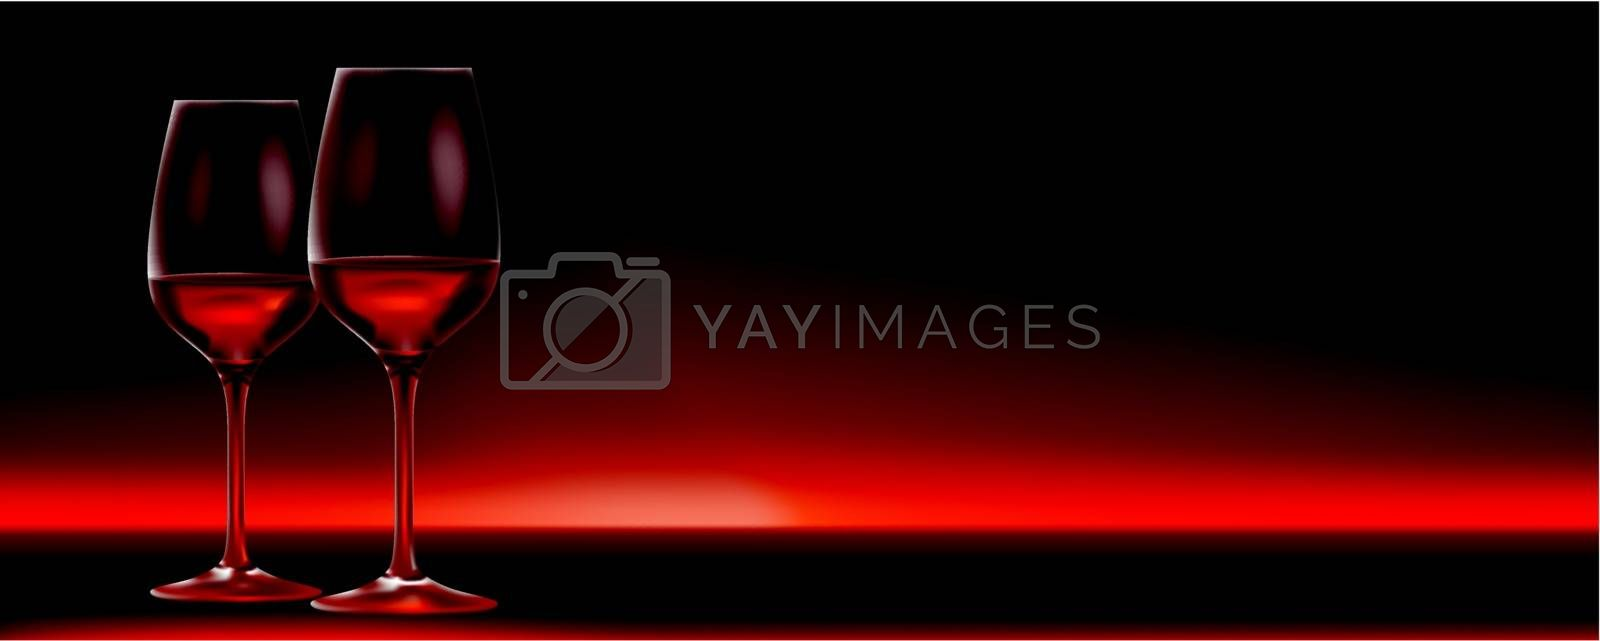 Vector Red Wine For Two Banner With Lots Of Copy Space Royalty Free Stock Image Yayimages Royalty Free Stock Photos And Vectors